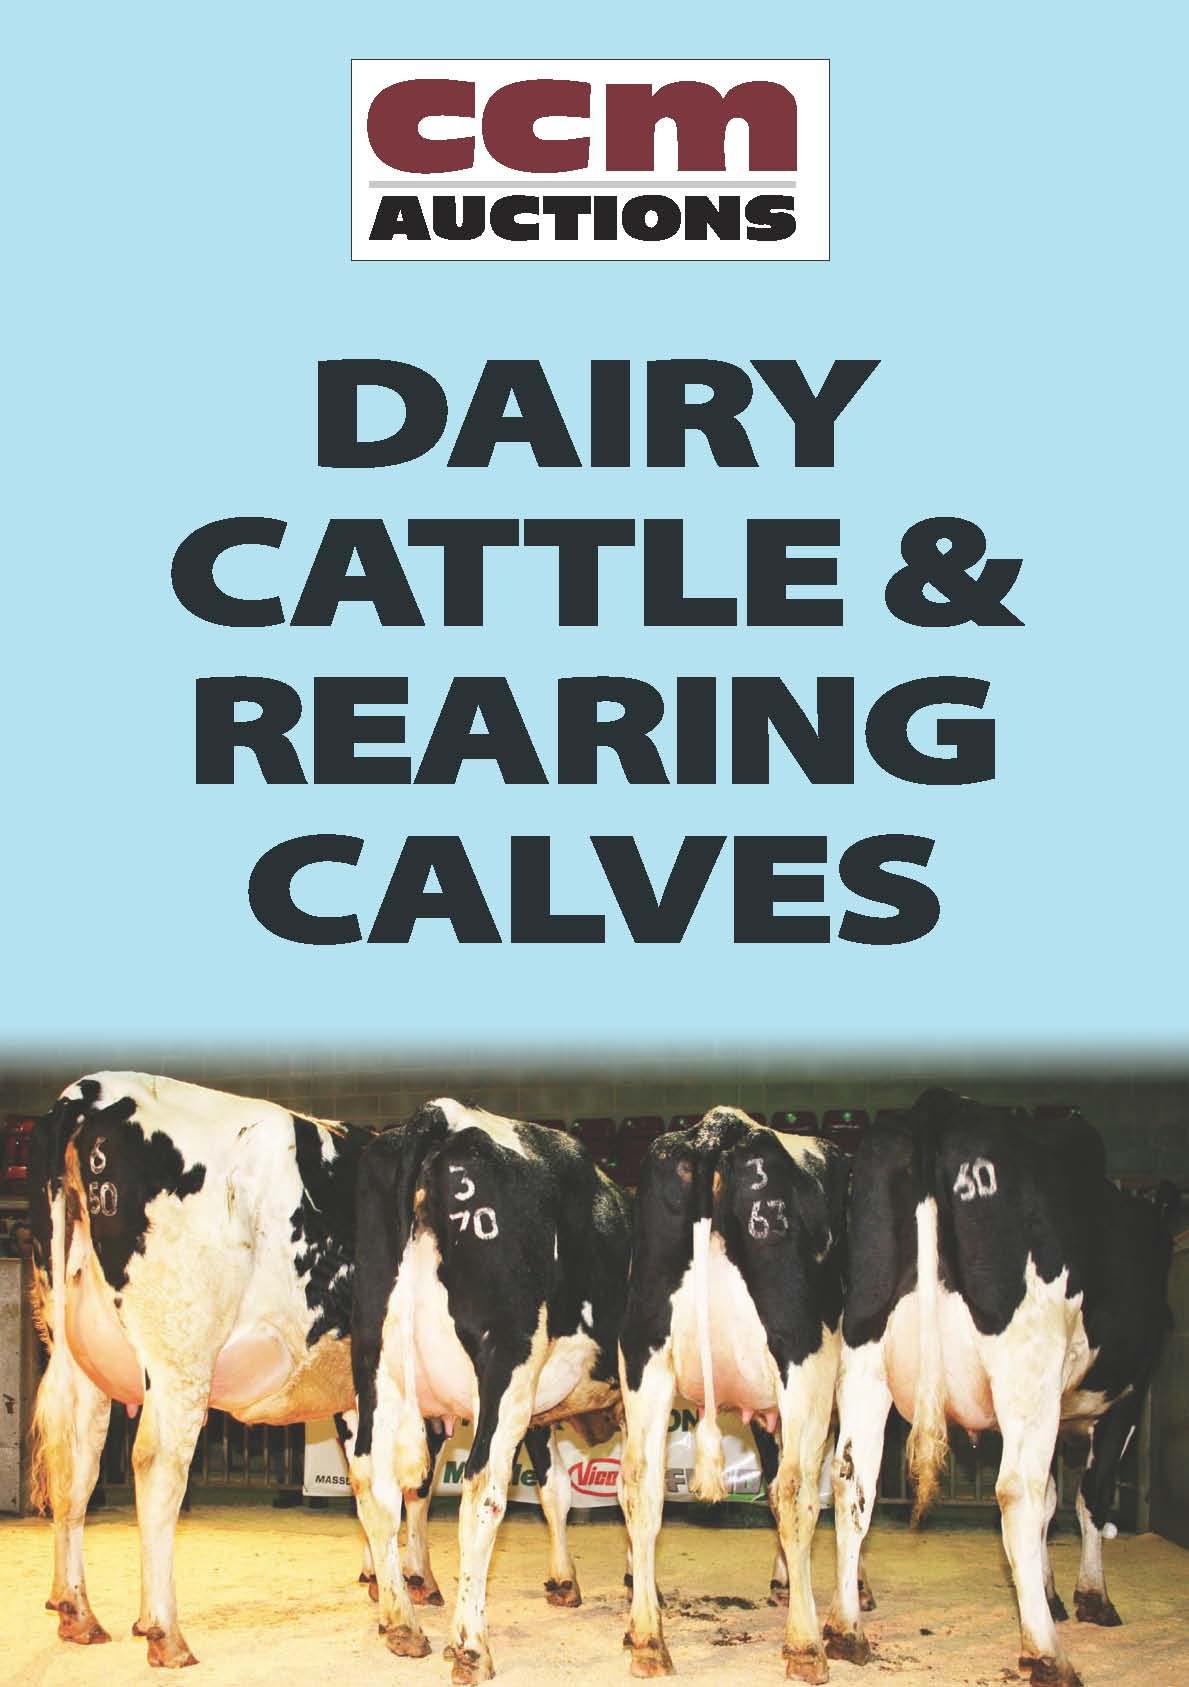 CALVES - MONDAY 15TH JUNE 2015